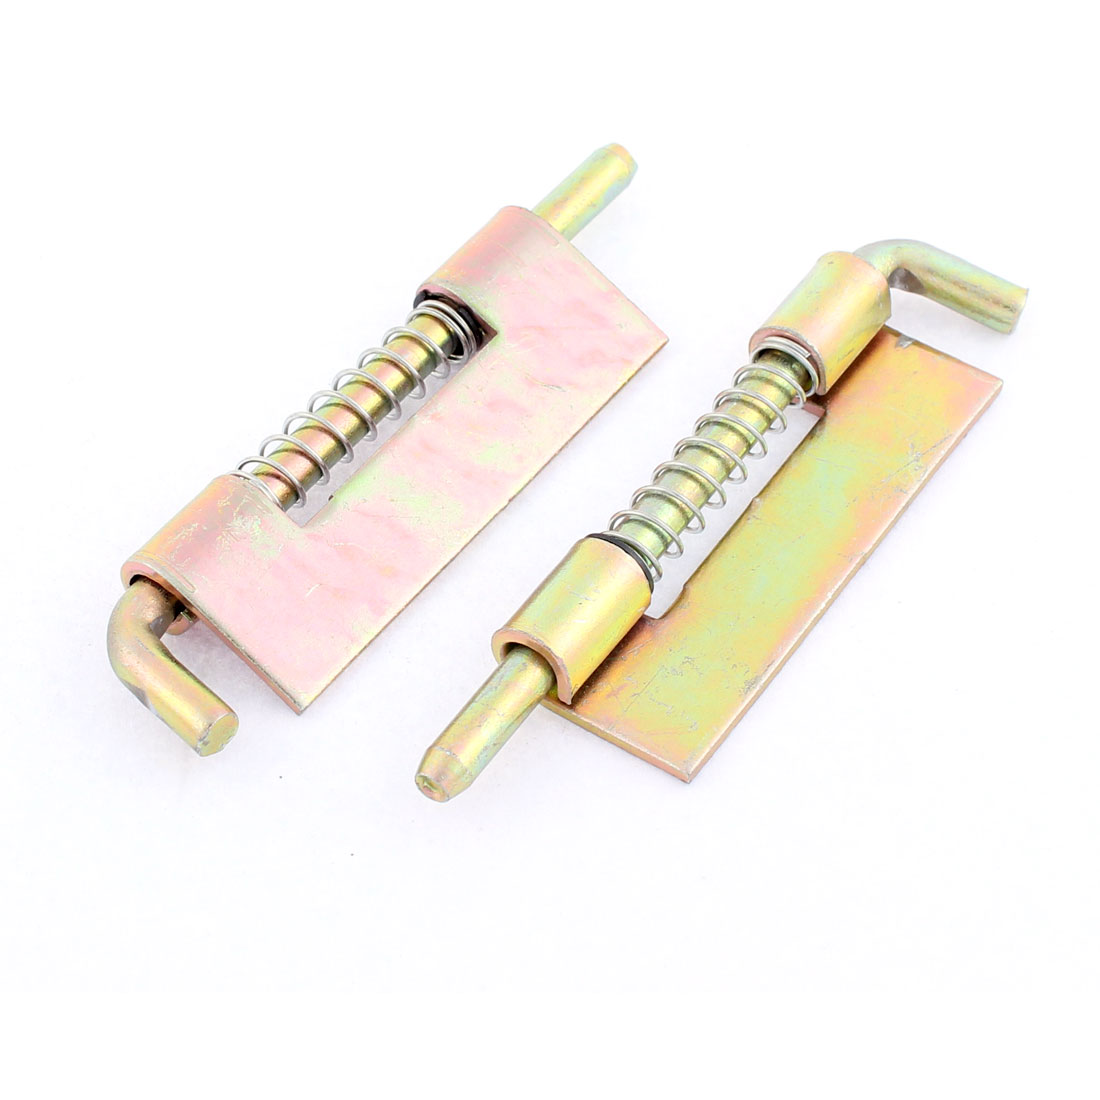 9cmx2cm Fixed Type Locked Spring Loaded Barrel Bolt Latch Bronze Tone 2pcs